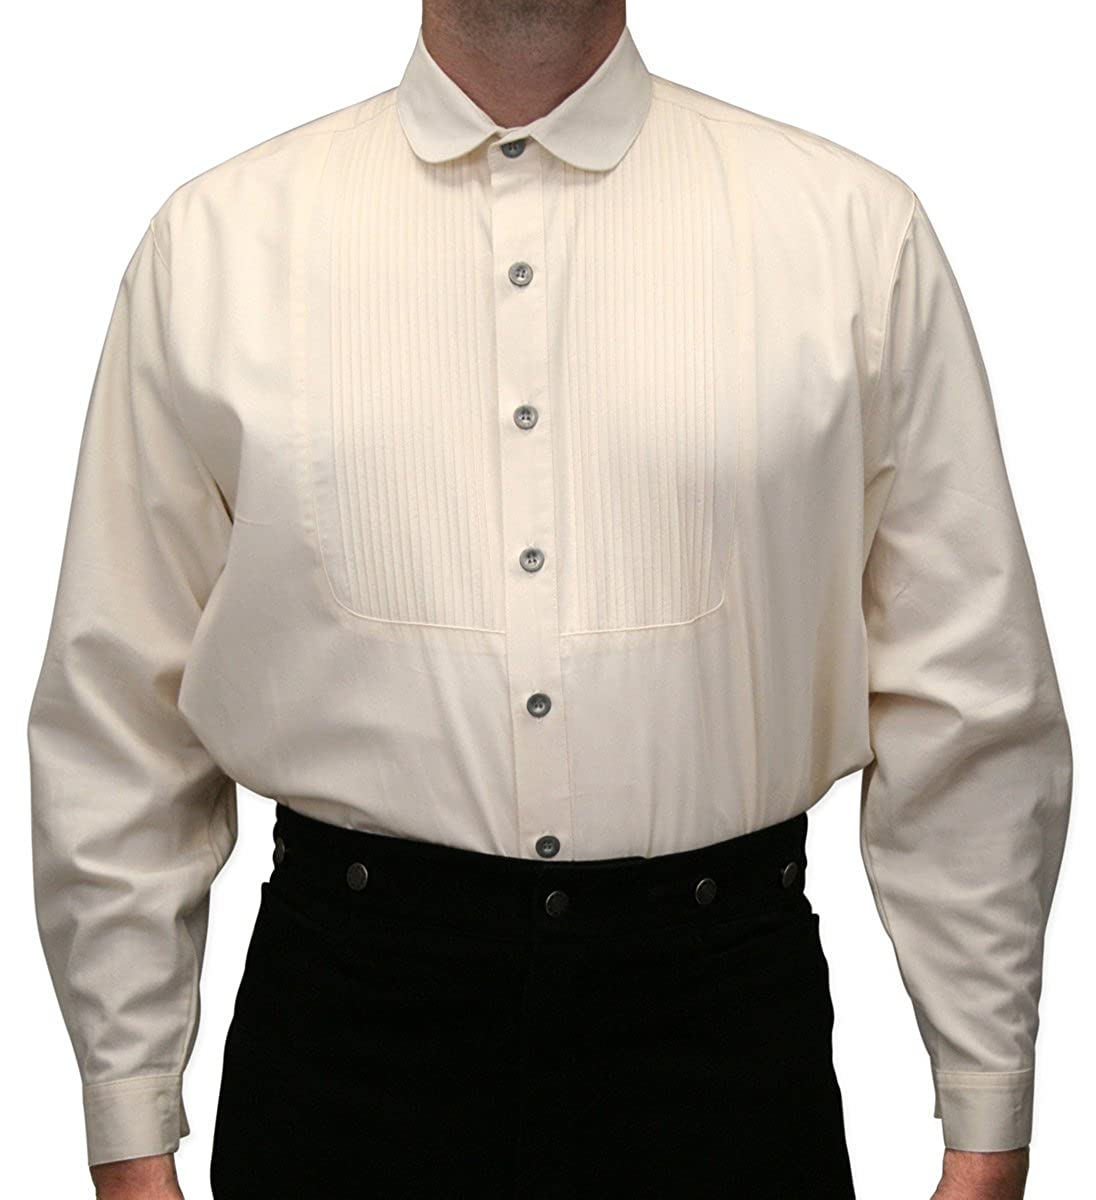 1920s Style Men's Shirts | Peaky Blinders Shirts and Collars Historical Emporium Mens Pleated Edwardian Round Club Collar Dress Shirt $59.95 AT vintagedancer.com